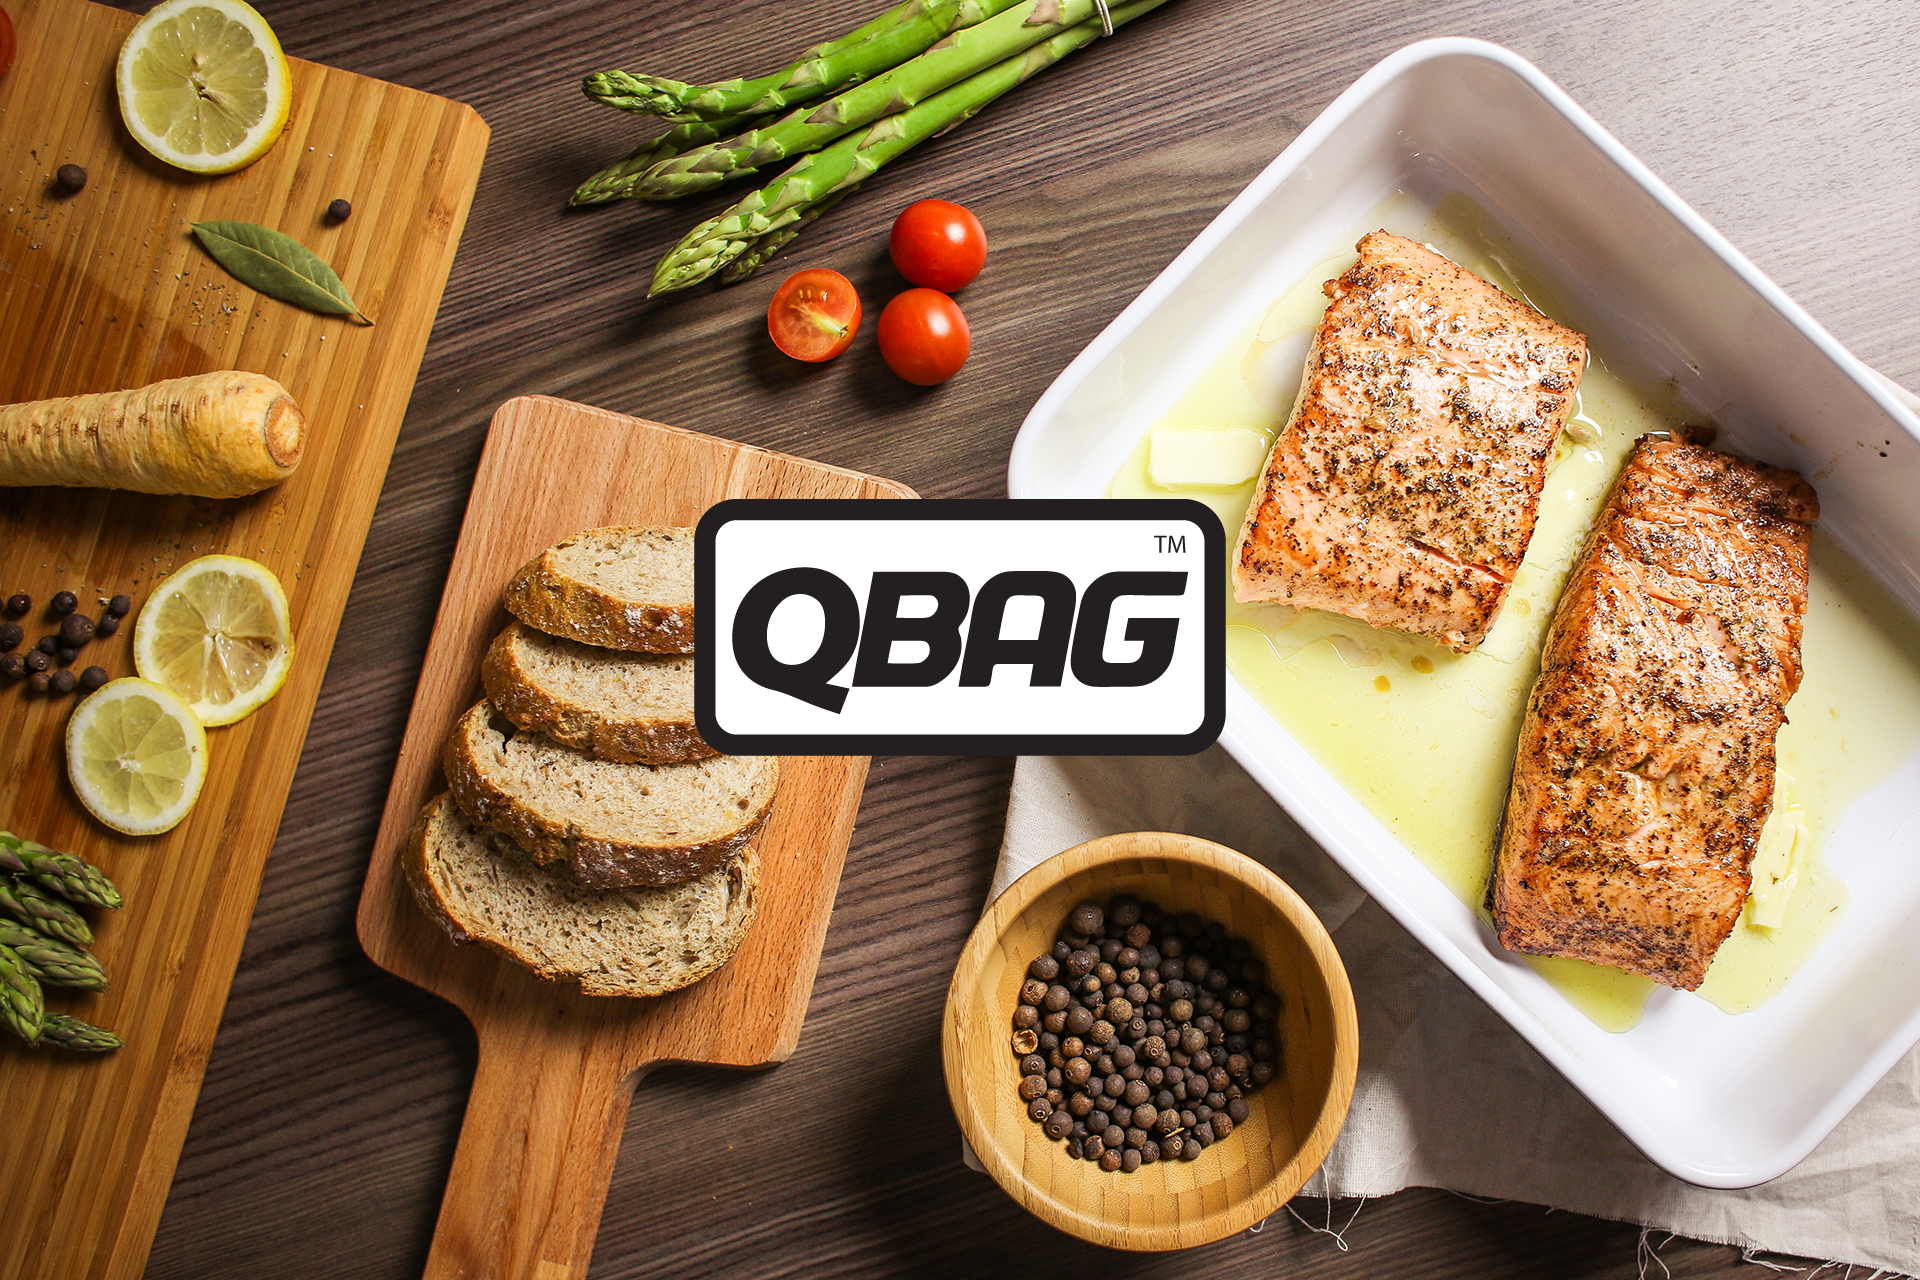 QBag Cooking Bags DCP